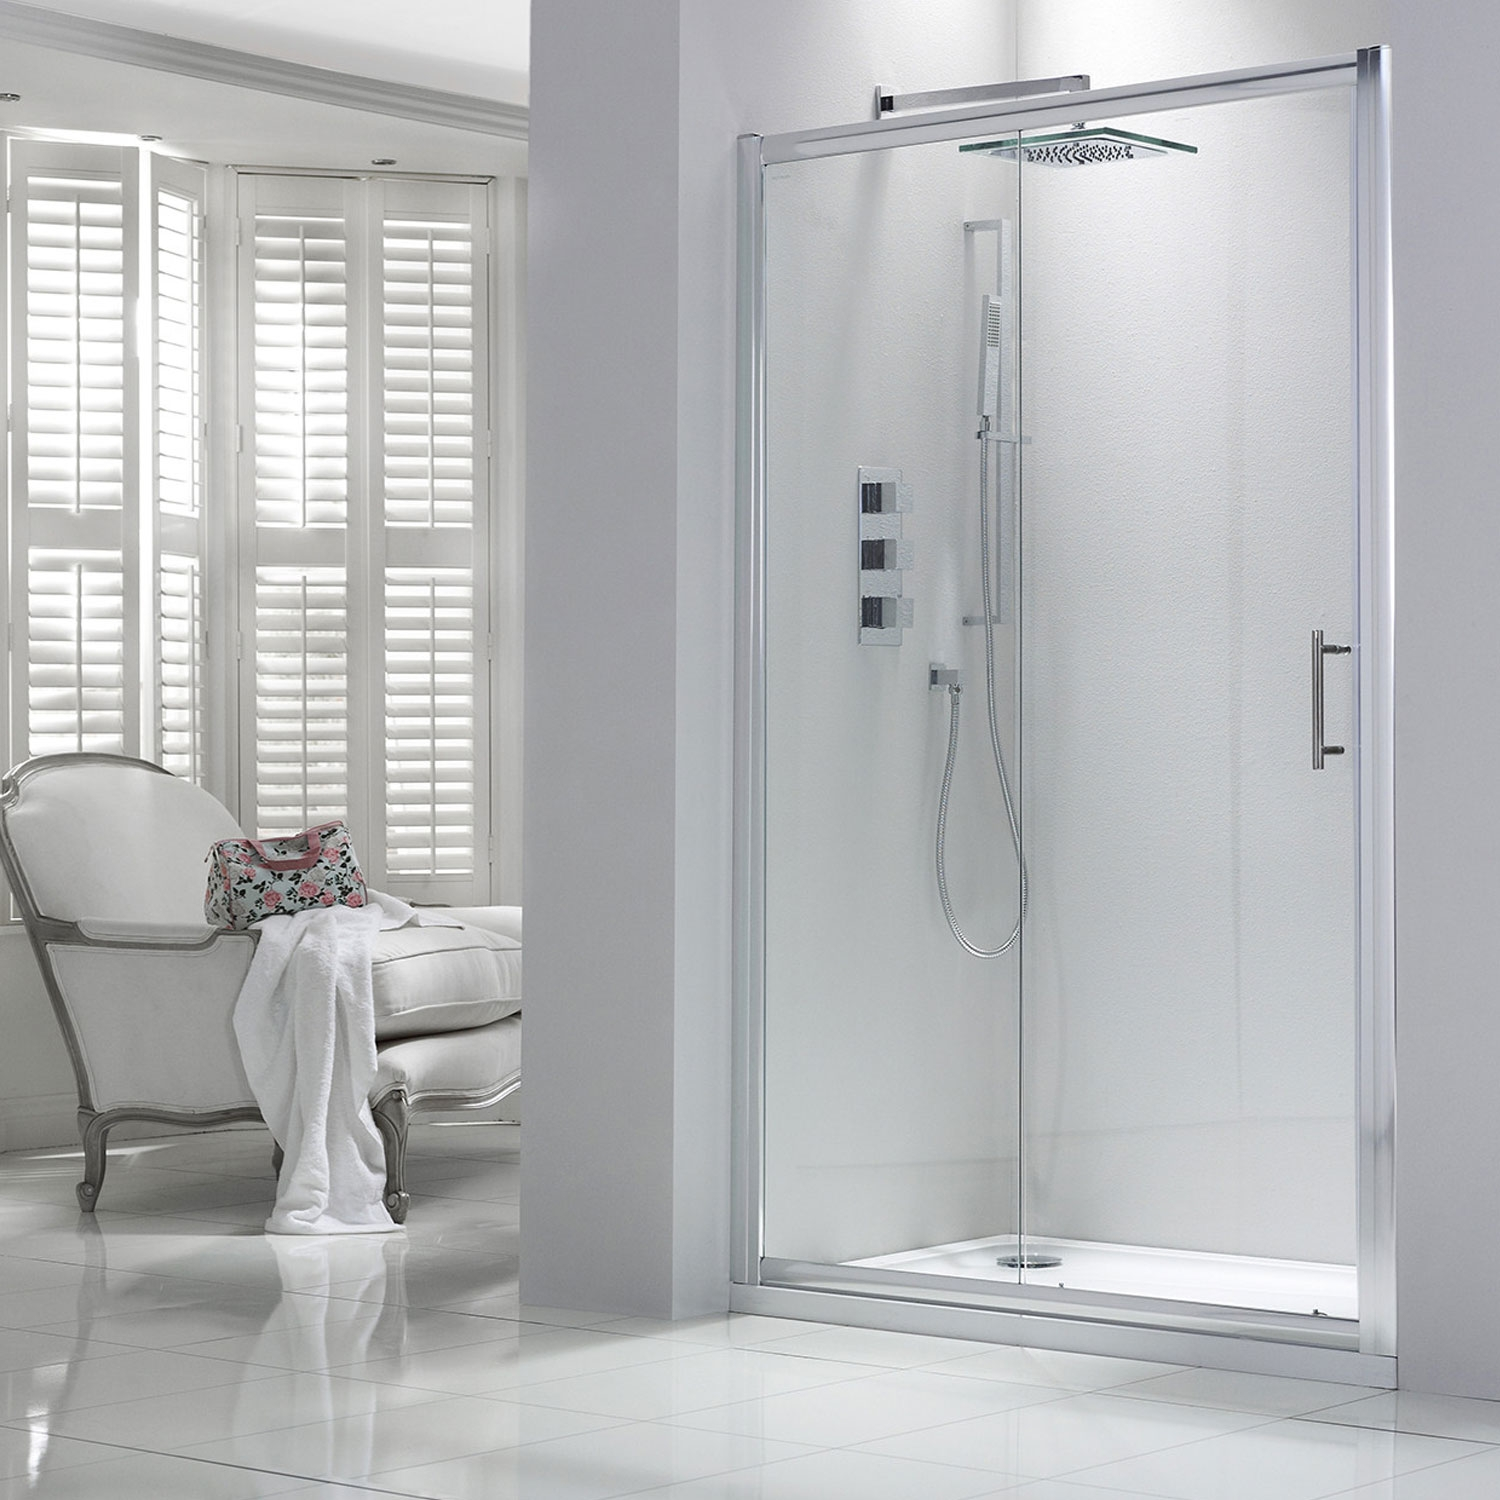 Verona Aquaglass Purity Sliding Shower Door 1200mm Wide - 6mm Glass-1